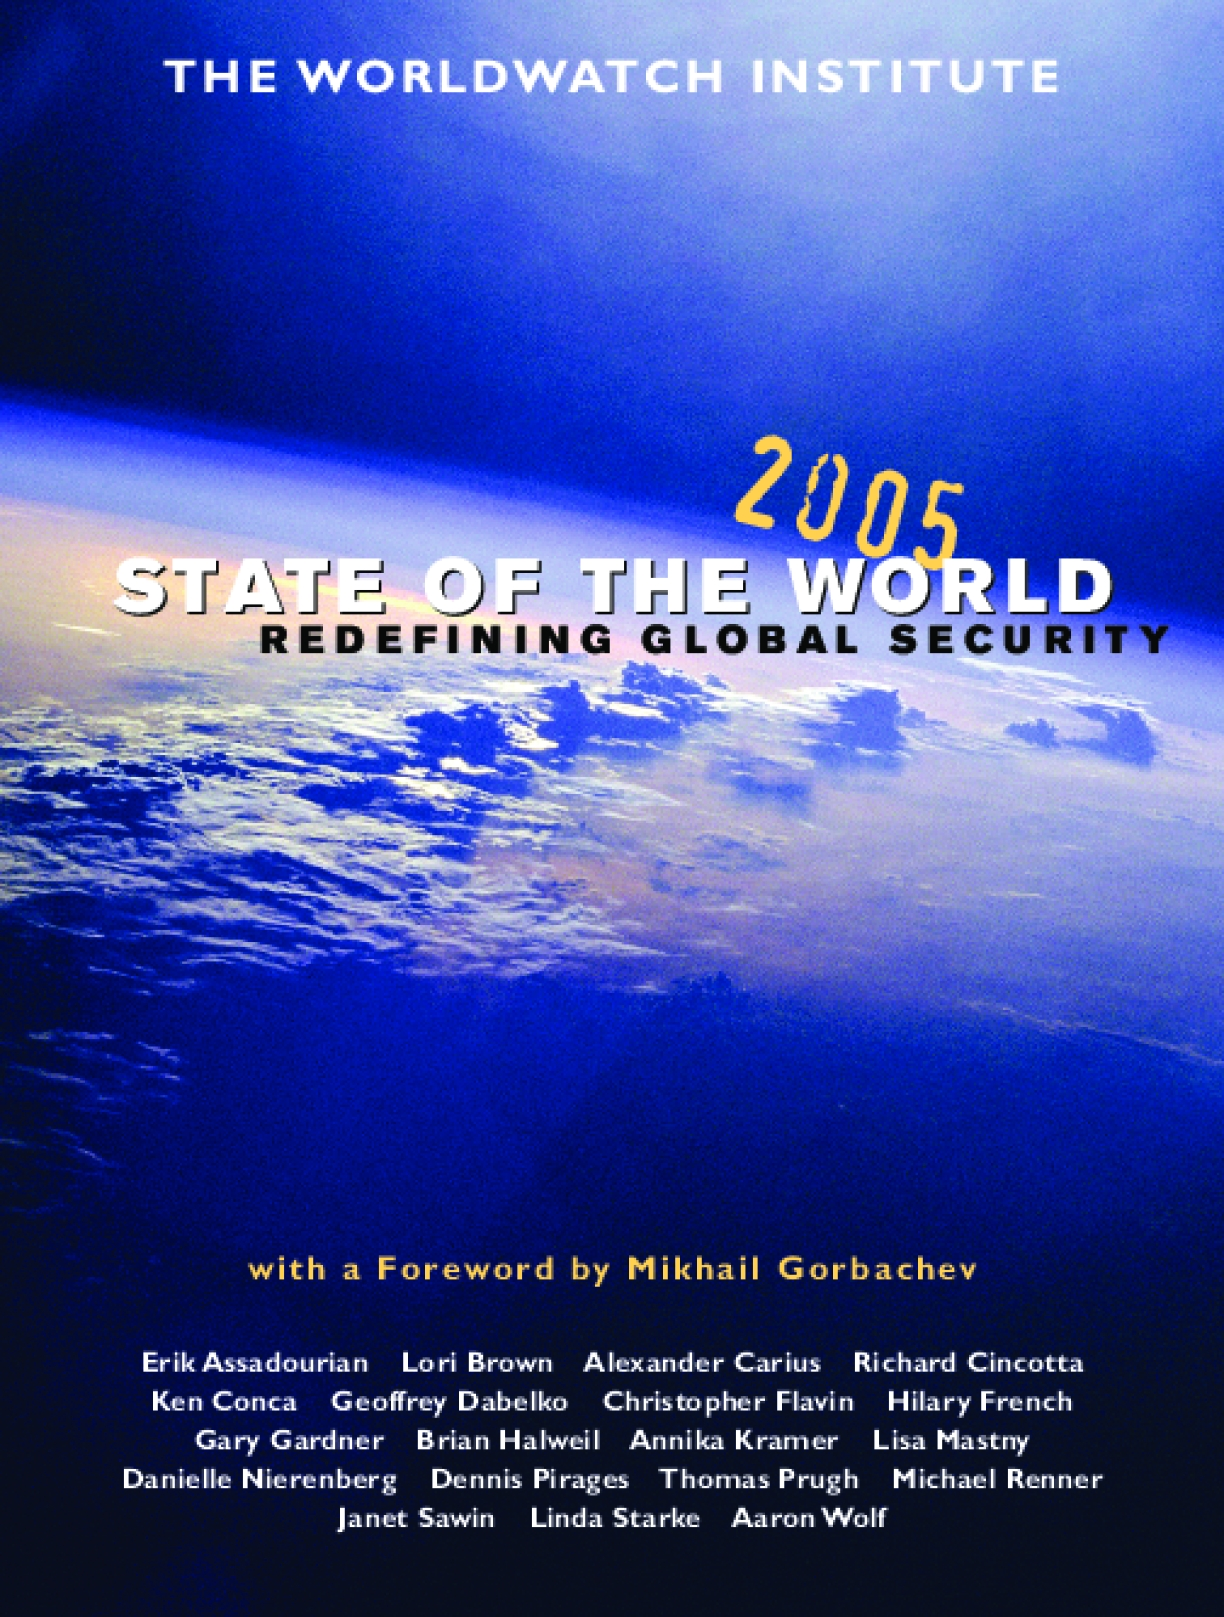 State of the World 2005: Redefining Global Security